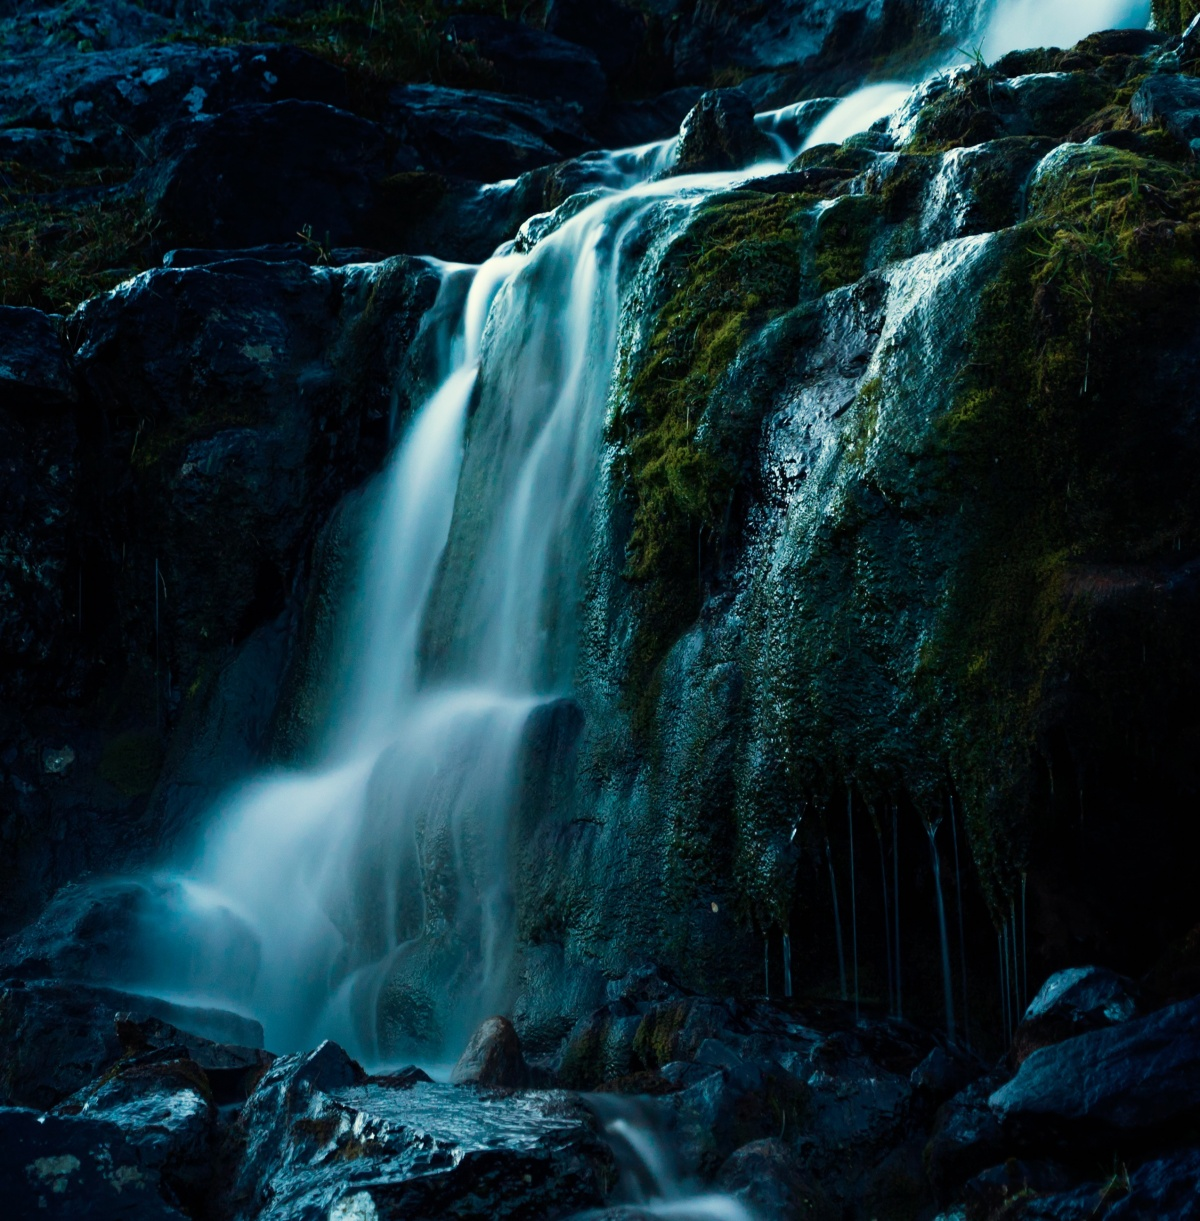 Photo of moolit waterfall in Sarek national park